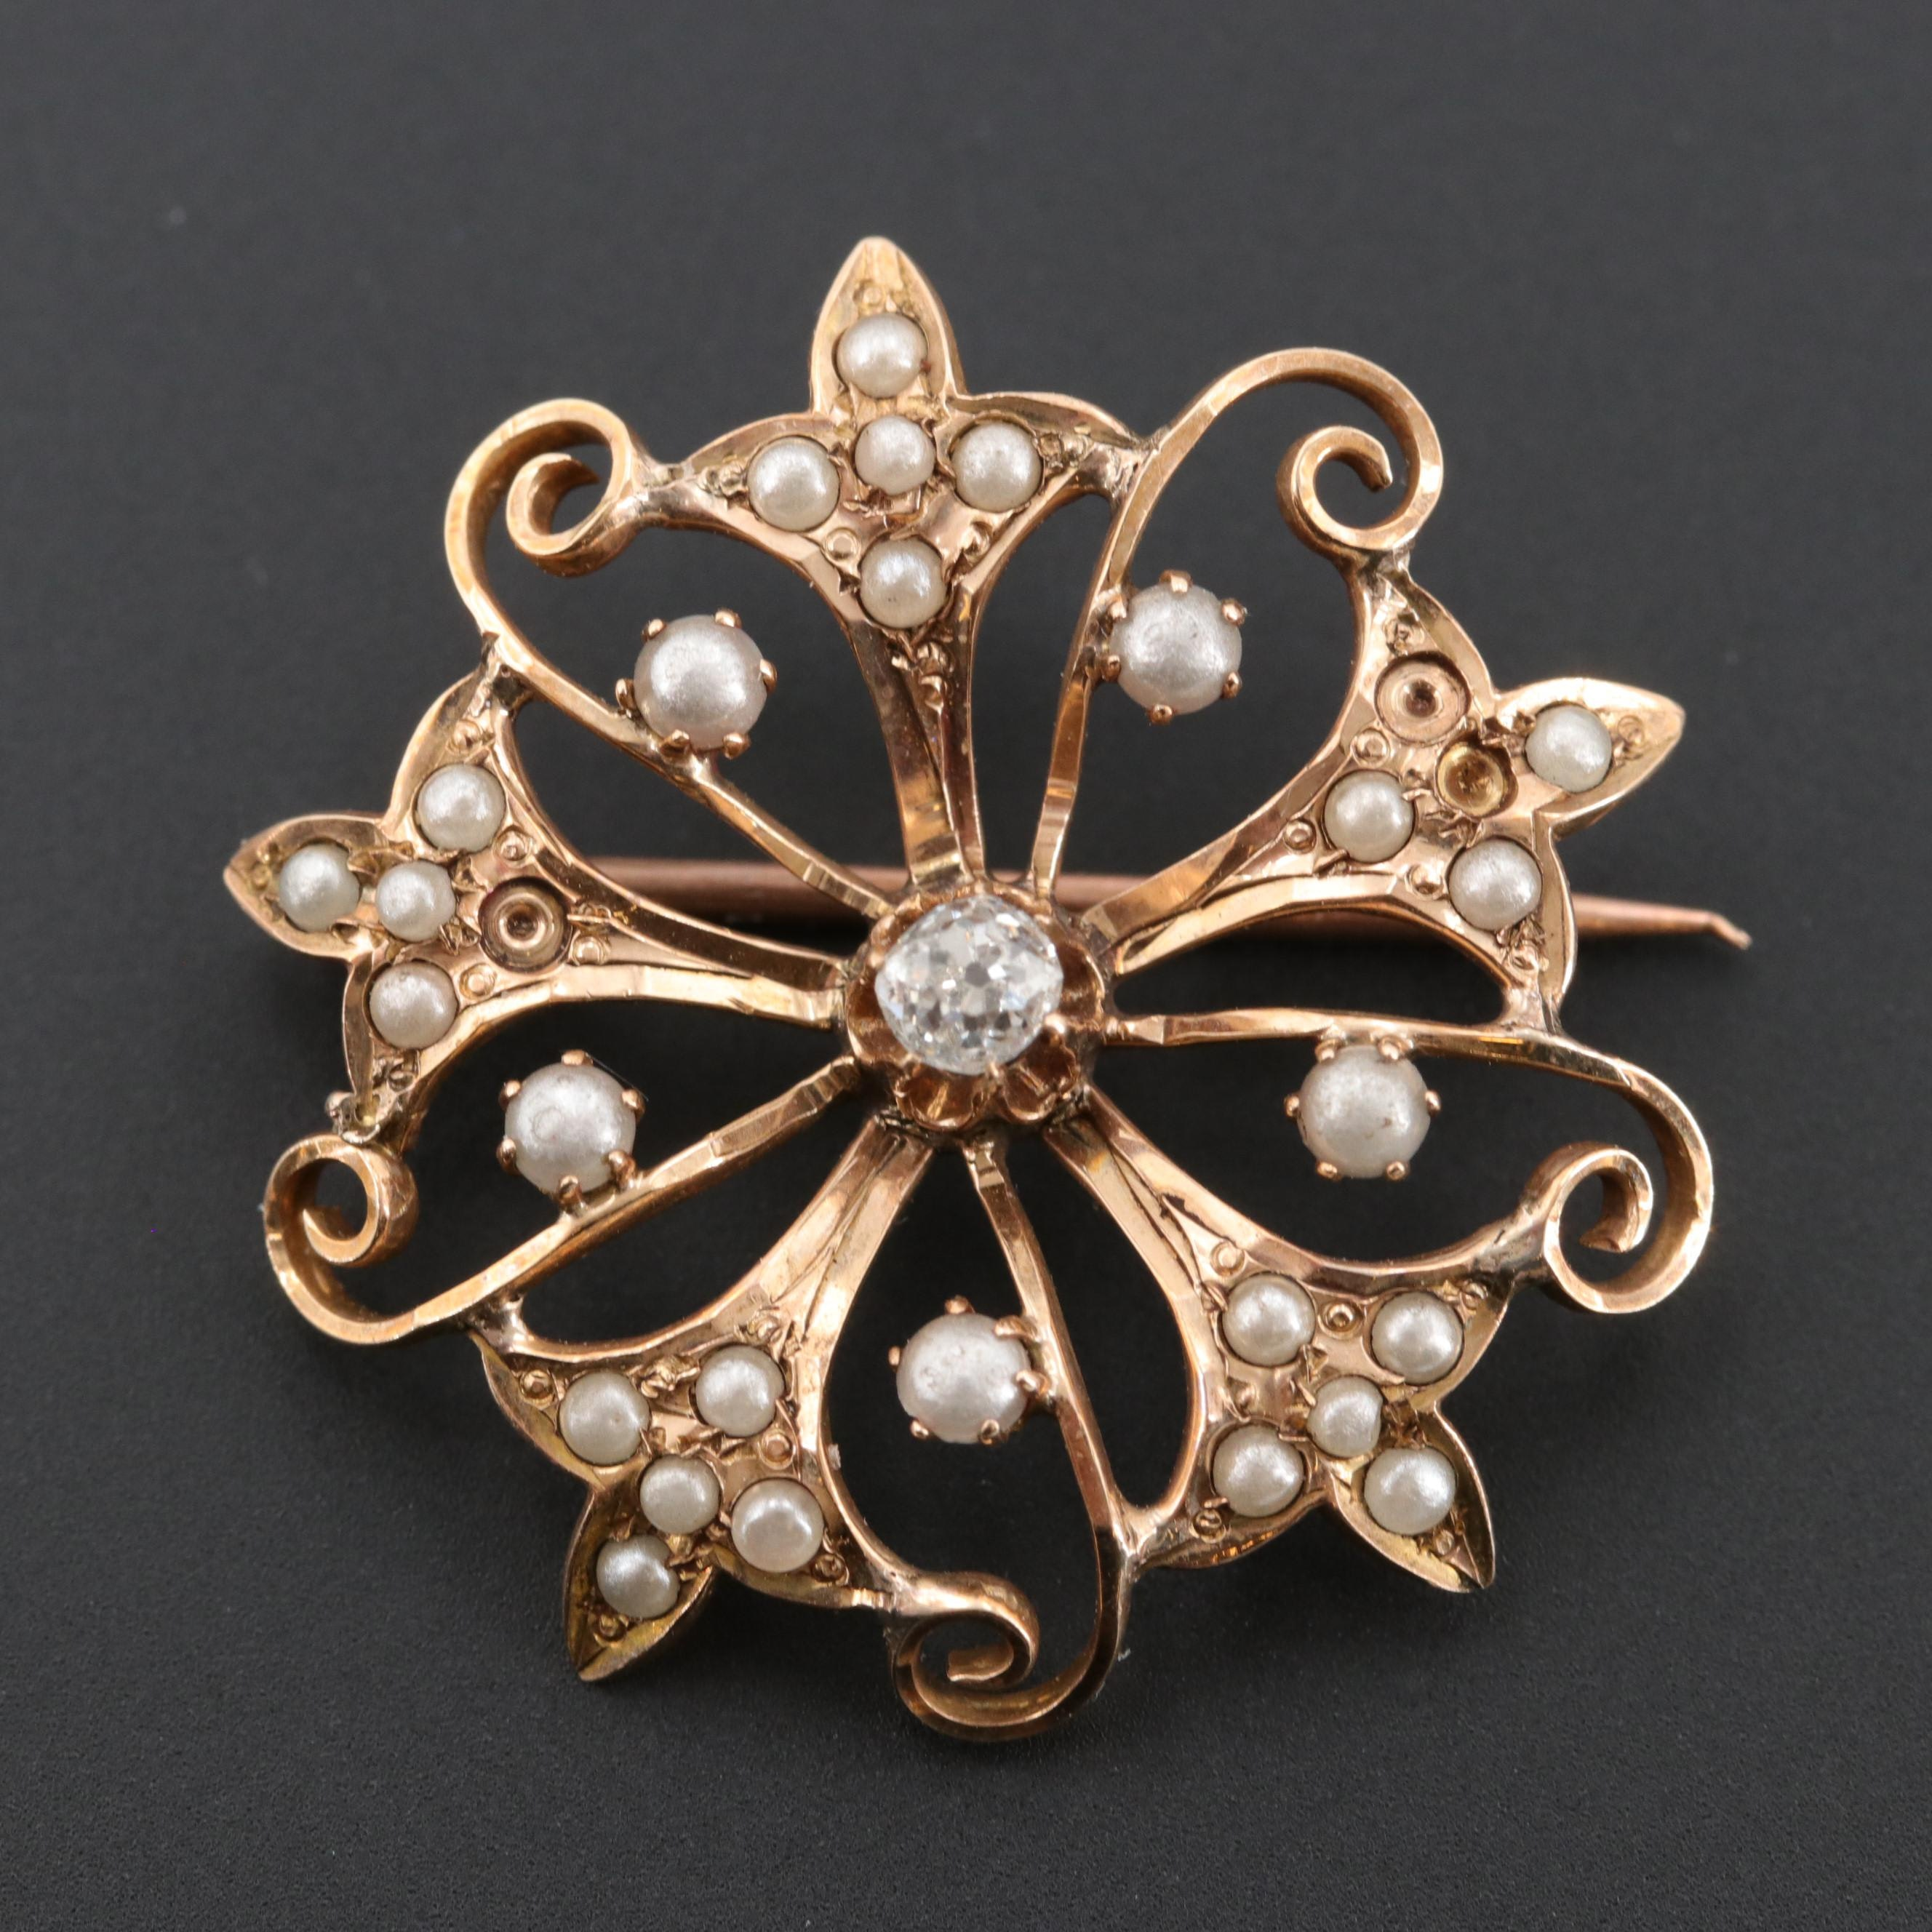 Early Victorian 10K Rose Gold Diamond and Imitation Pearl Brooch